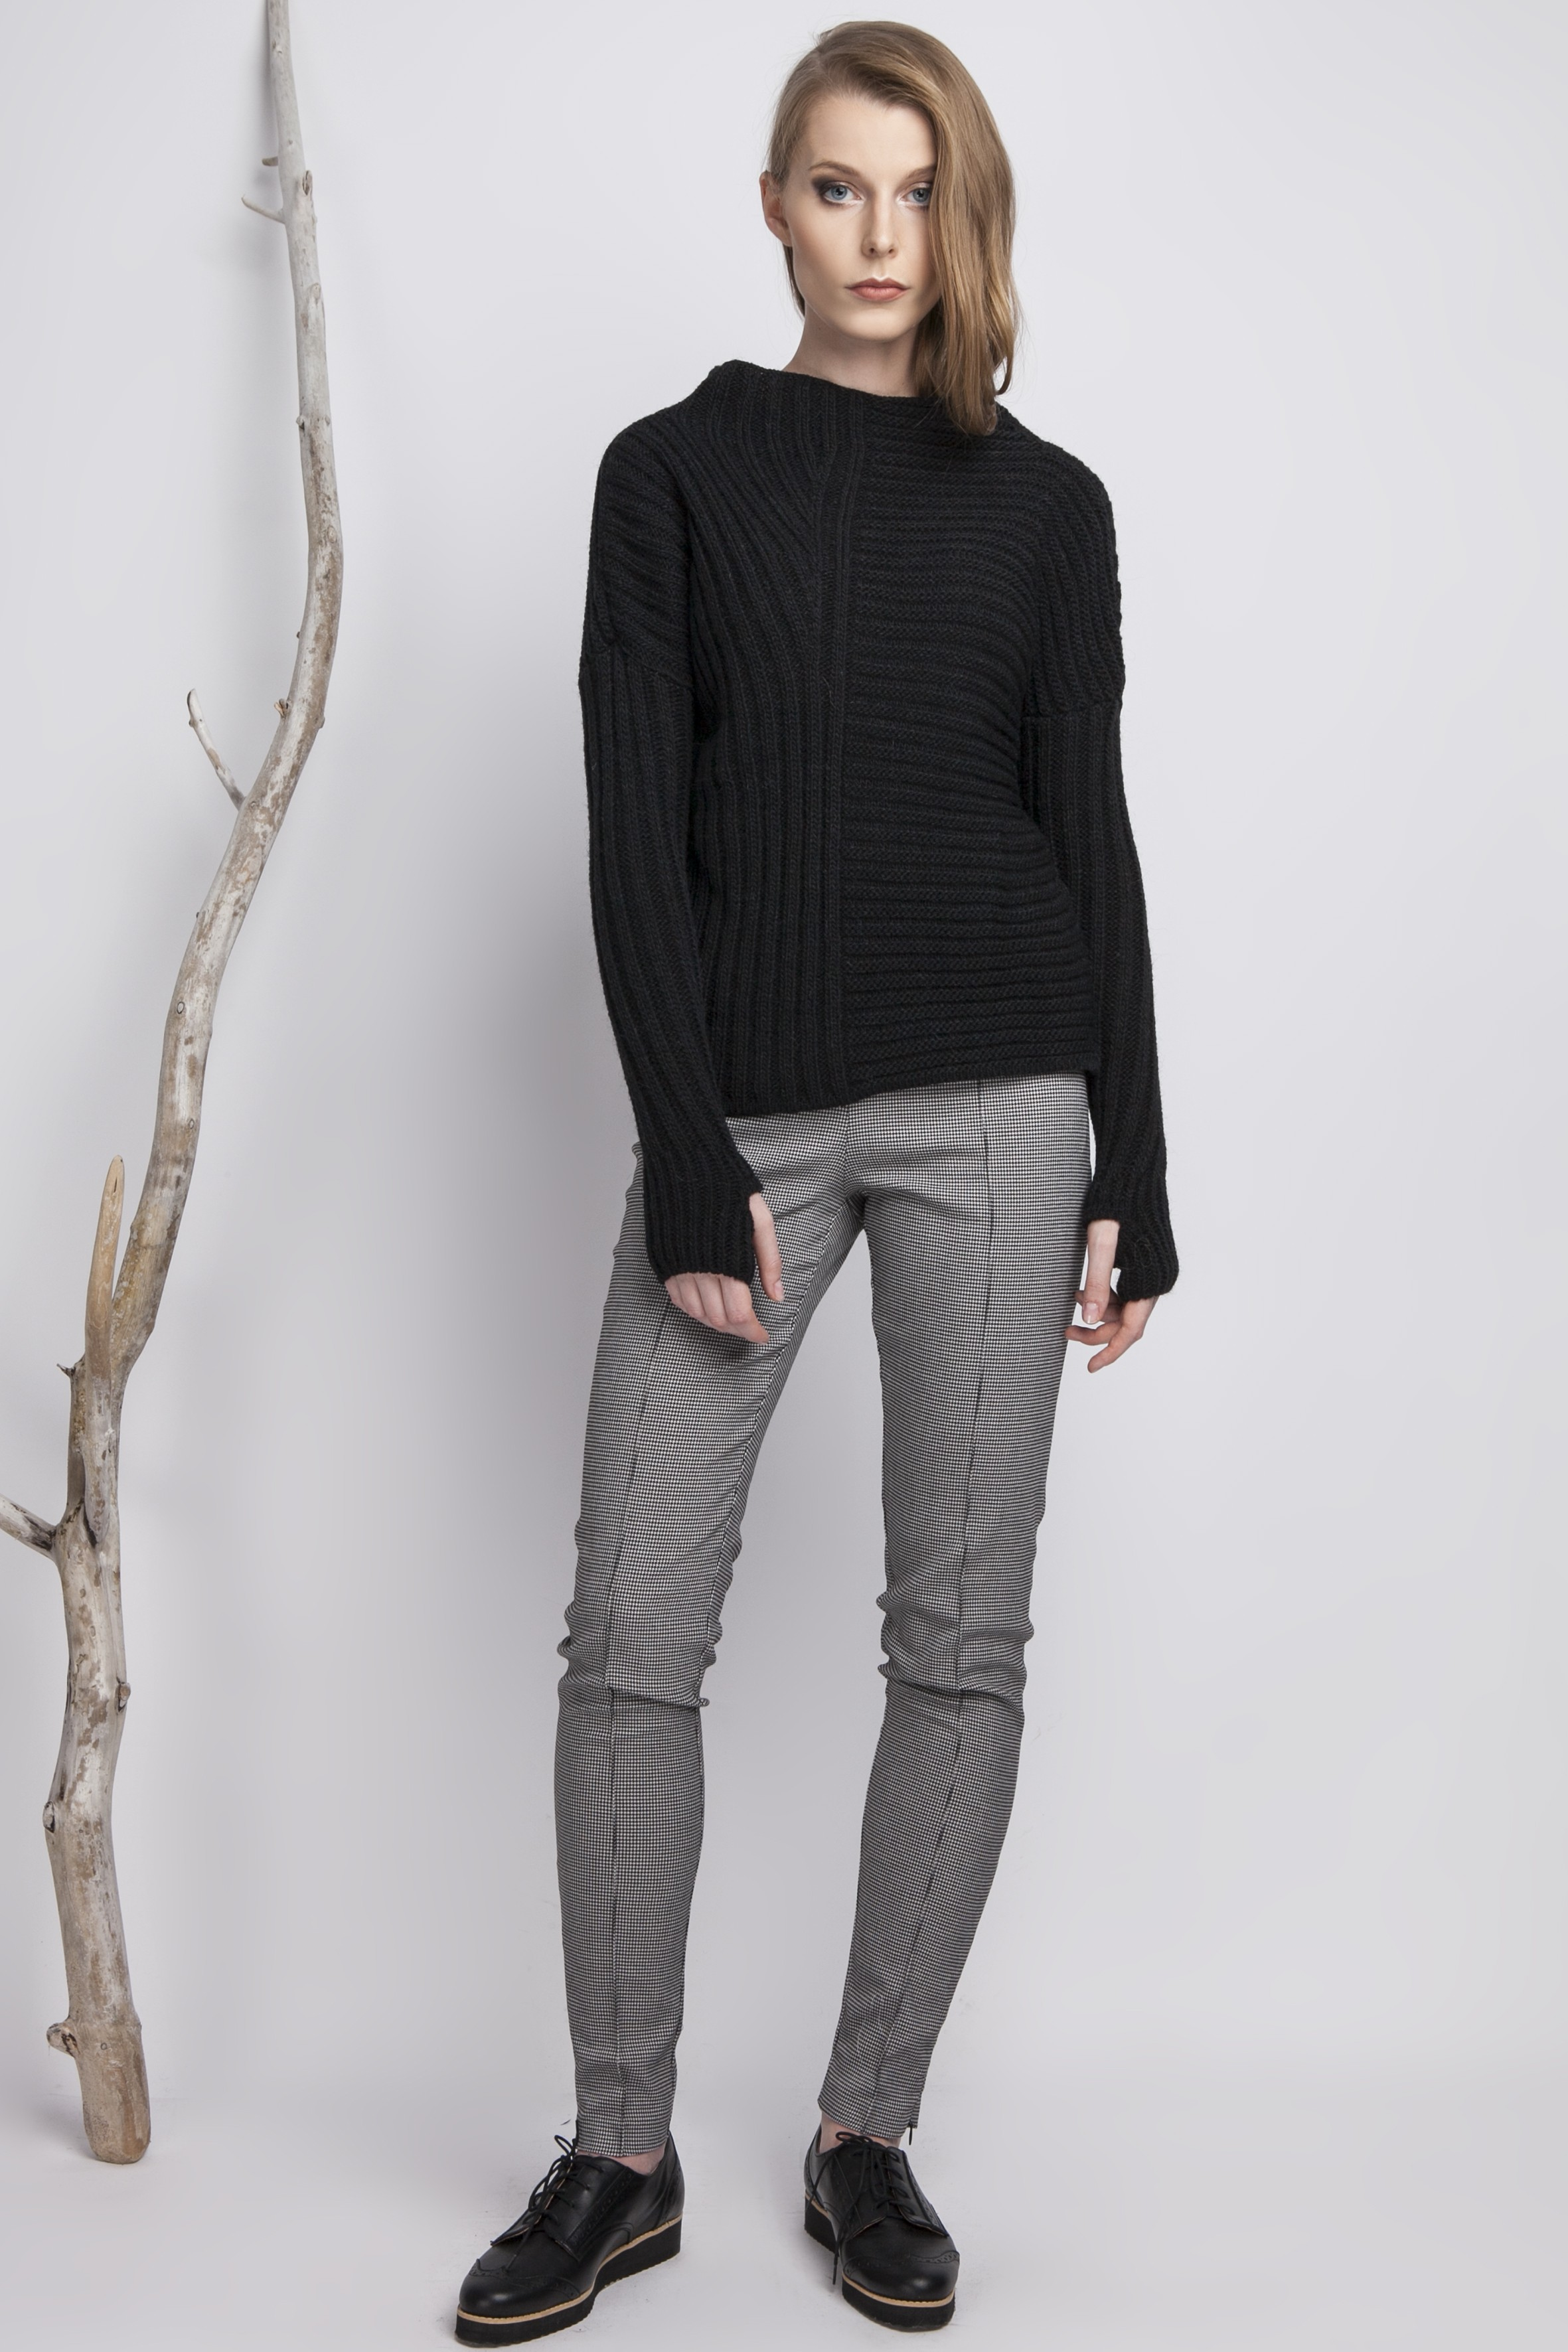 Thumbhole Sweater | Sweater with Holes in Sleeves | Hoodie Thumb Holes